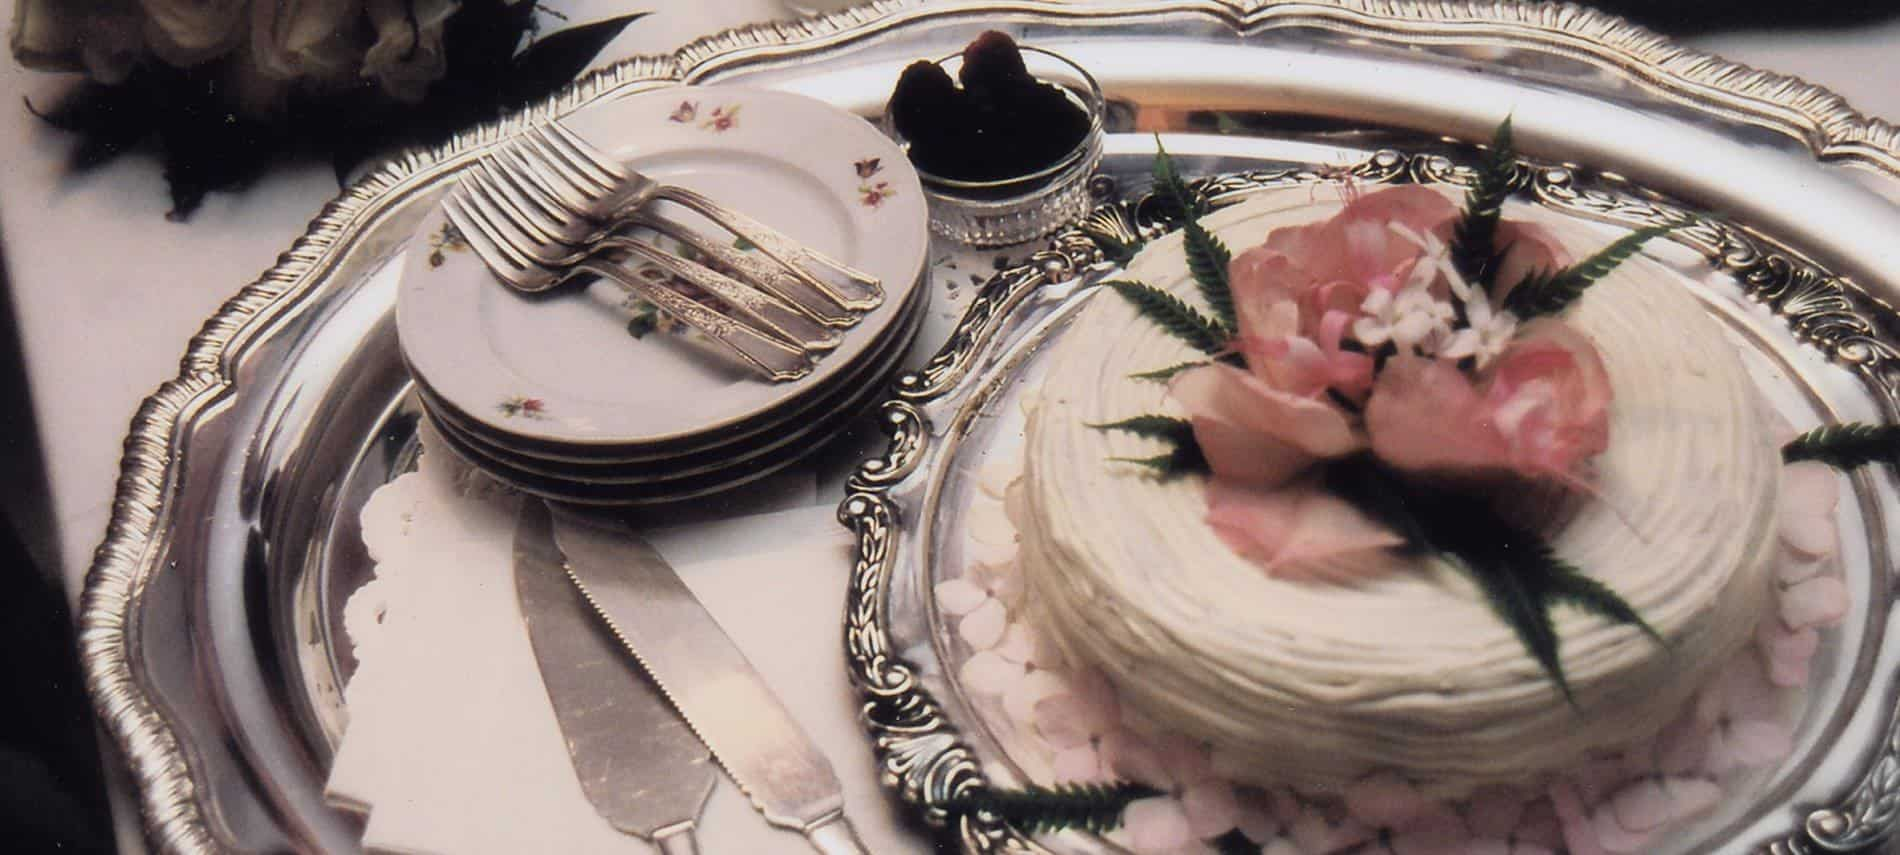 Round silver platter topped with small round white wedding cake with pink flowers and greenery and four plates and forks